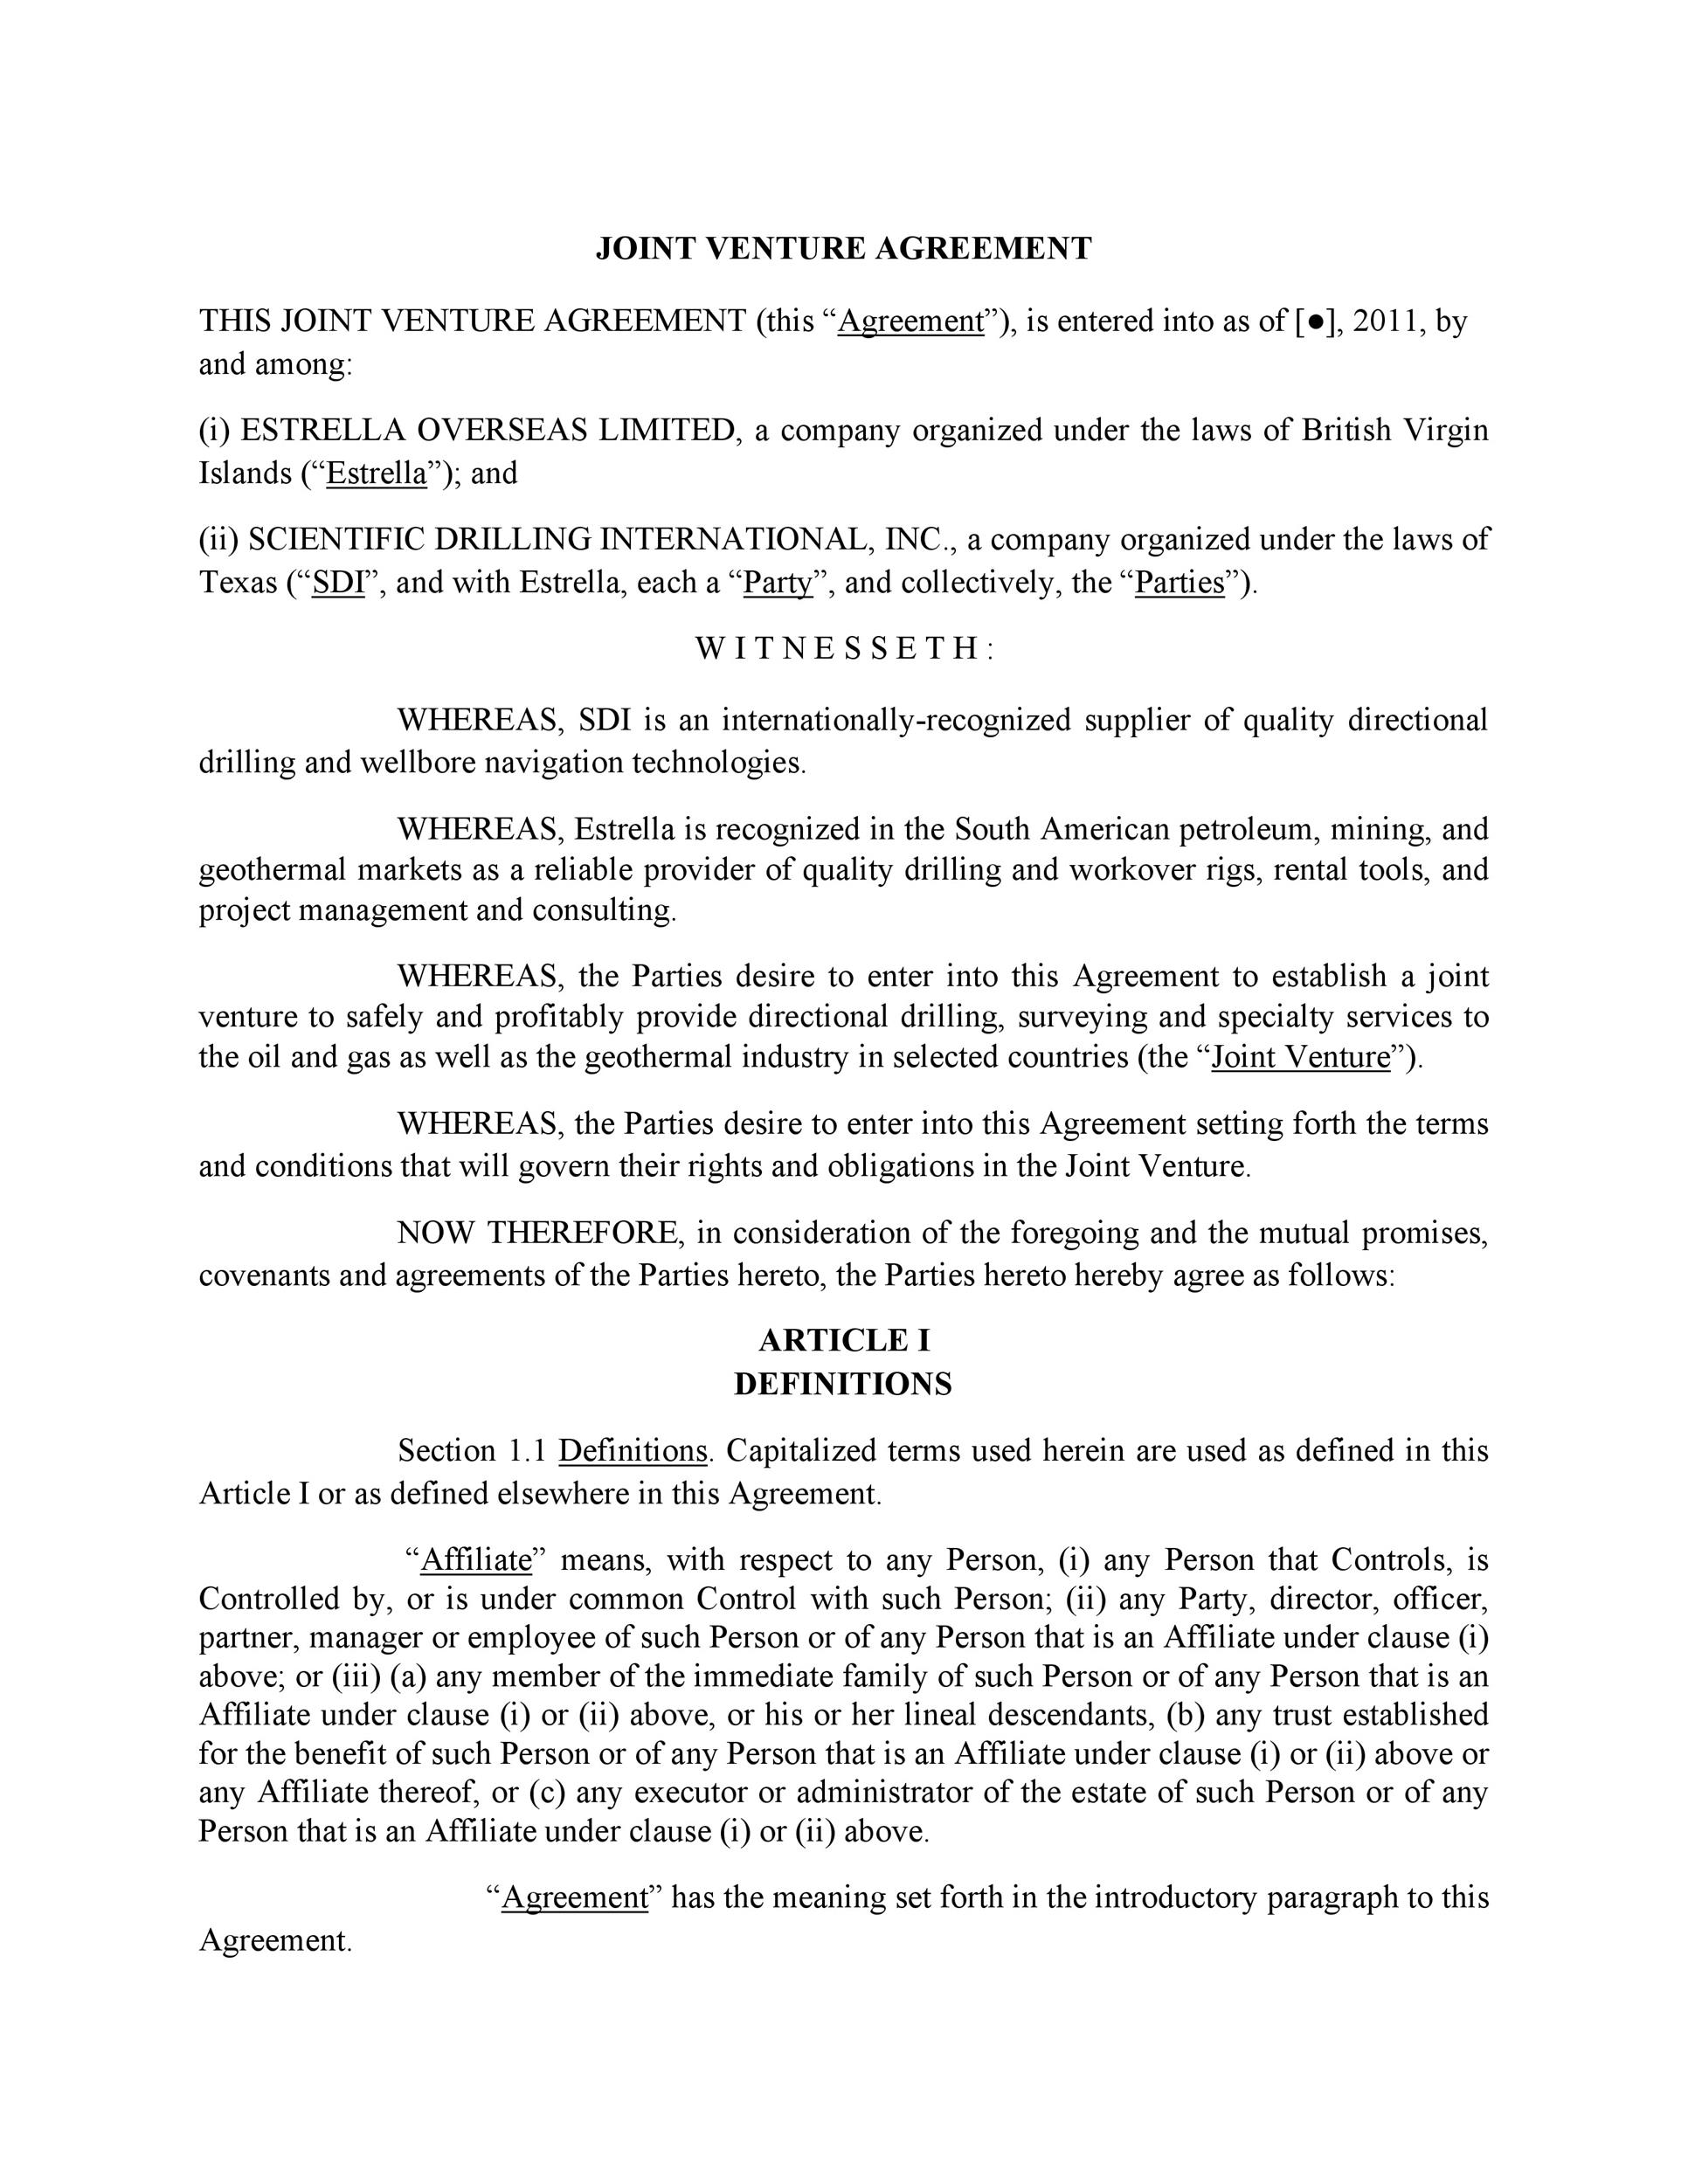 Joint Partnership Agreement Template joint venture agreement – Articles of Incorporation Template